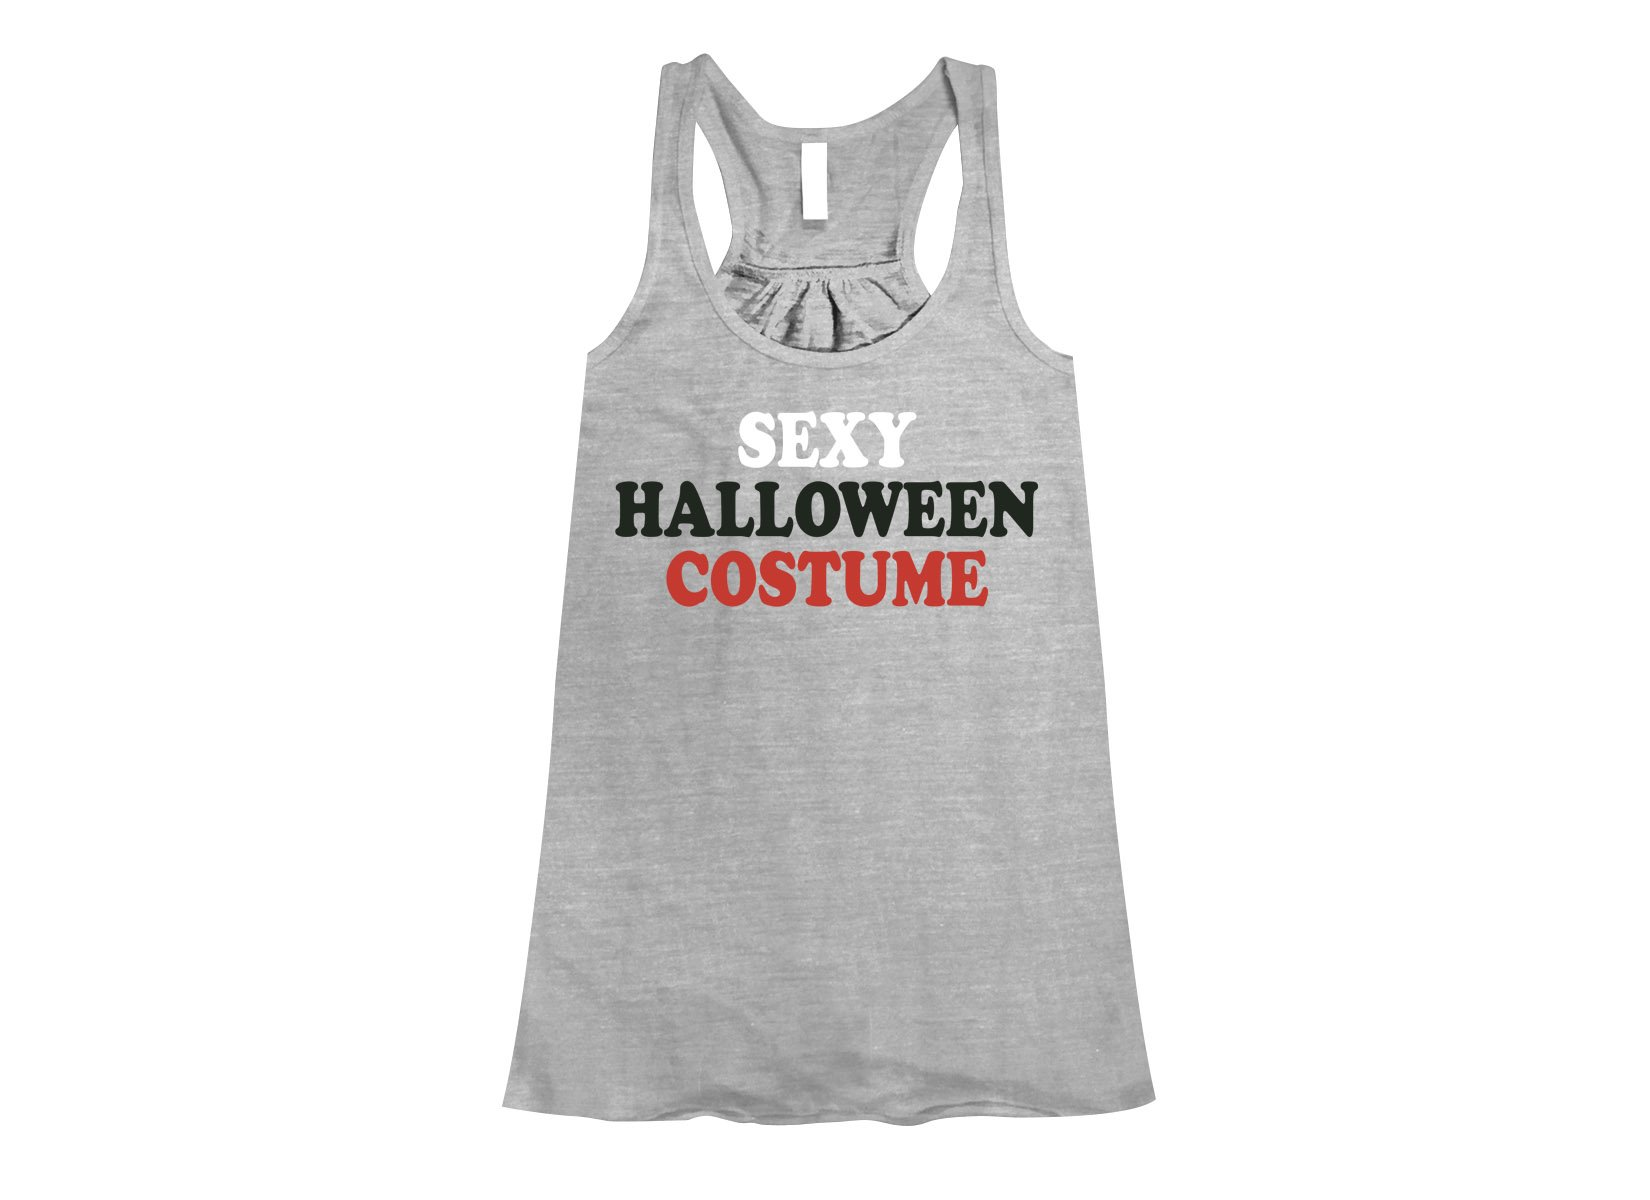 Sexy Halloween Costume on Womens Tanks T-Shirt